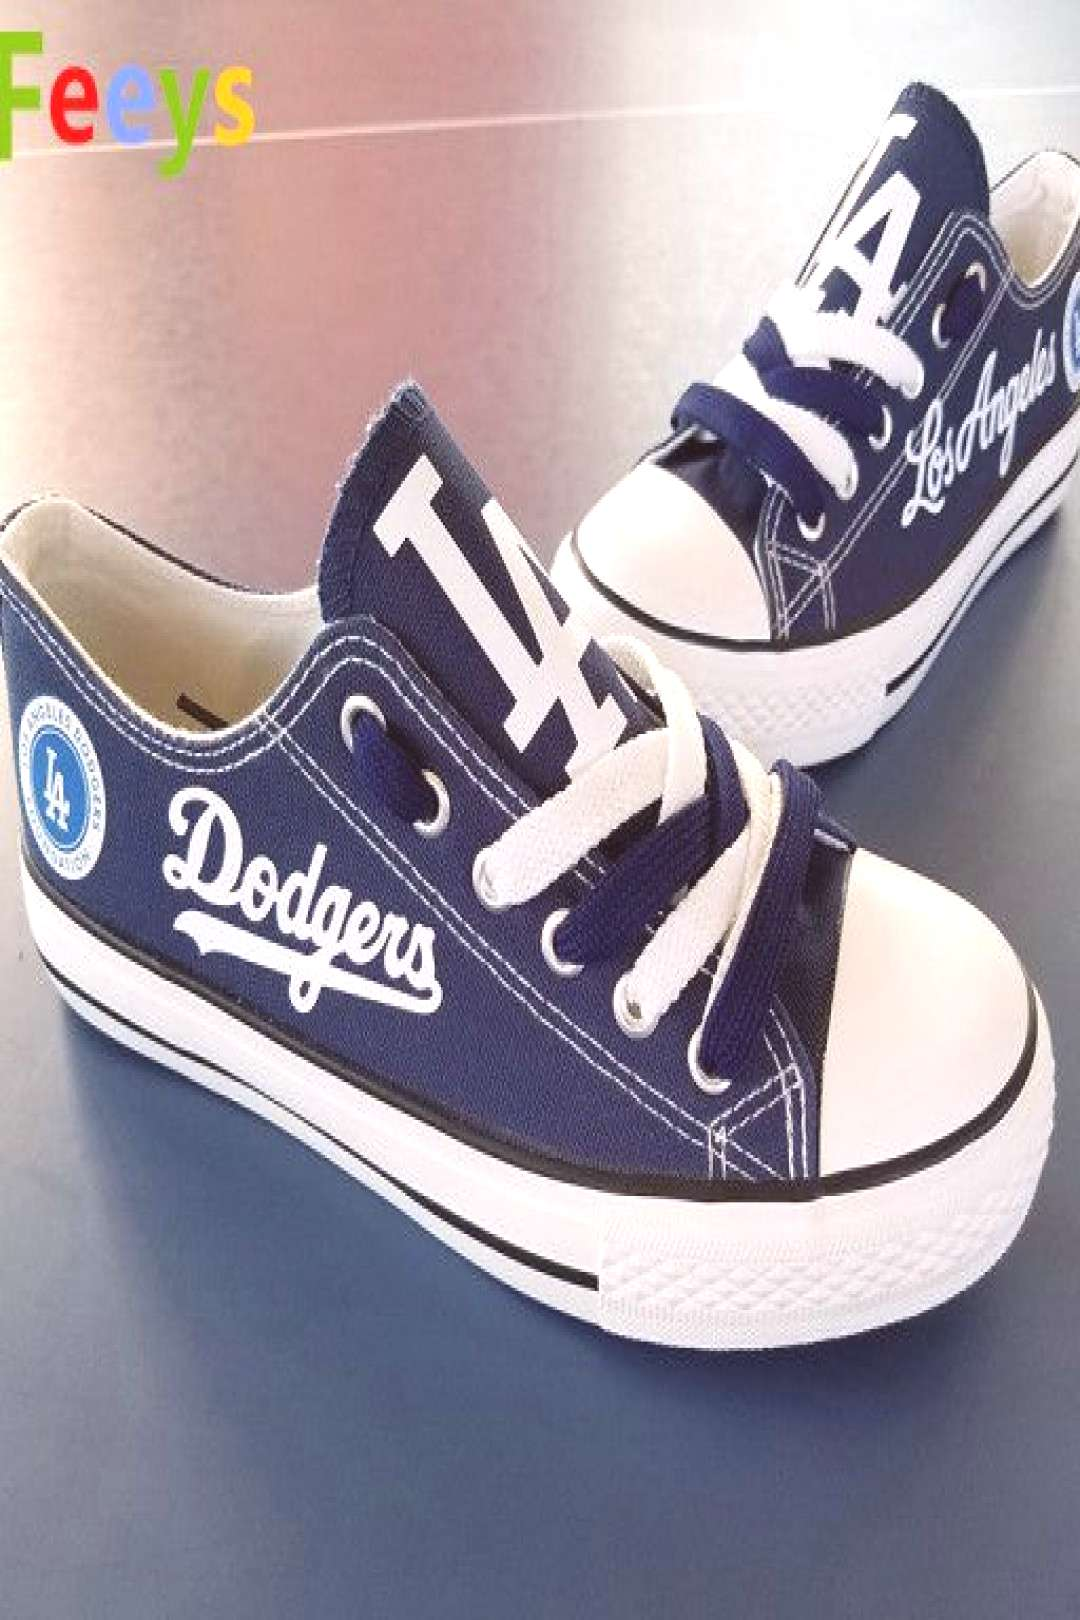 Los Angeles Dodgers shoes womens LA dodgers sneakers baseball fashion Christmas gift birthday gift